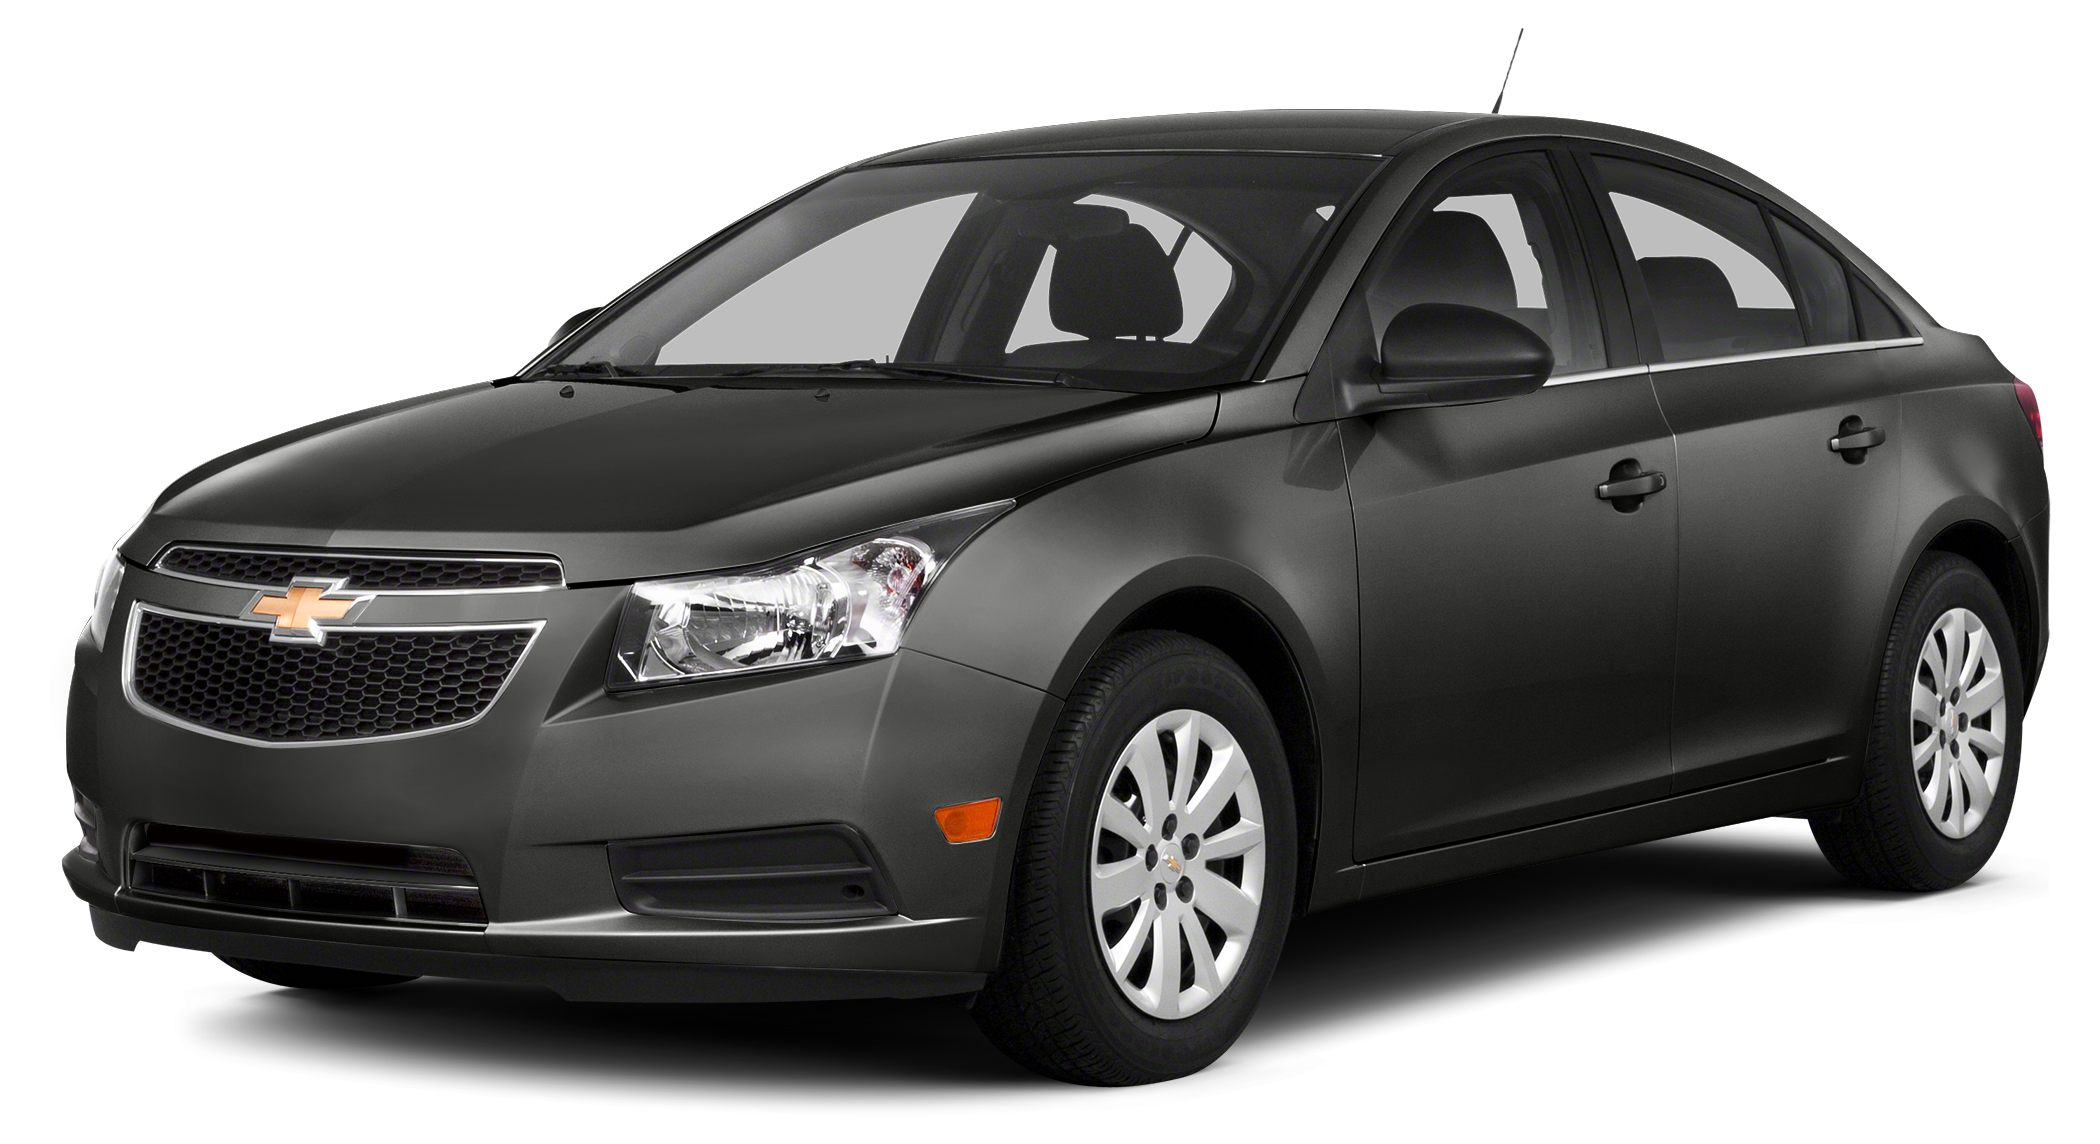 2014 Chevrolet Cruze LS This 2014 Chevrolet Cruze LS is proudly offered by Fenton Honda Of Ardmore